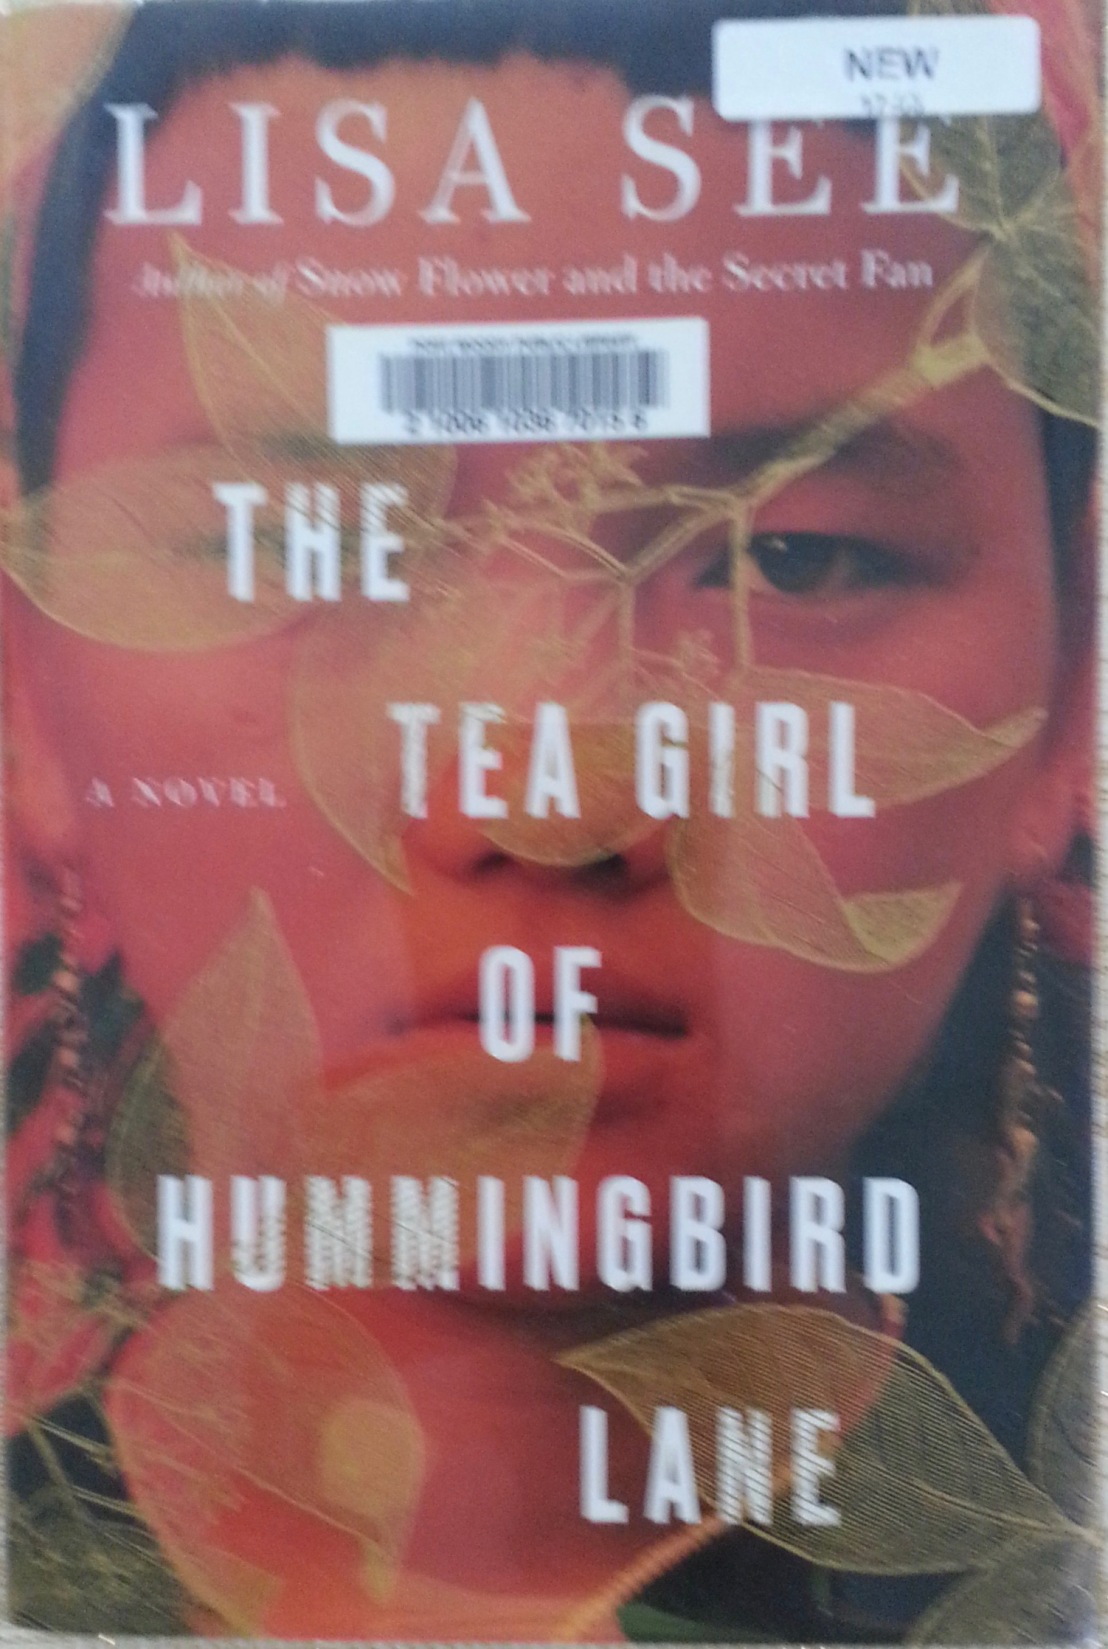 Lisa See's — The tea girl of Hummingbird Lane *****